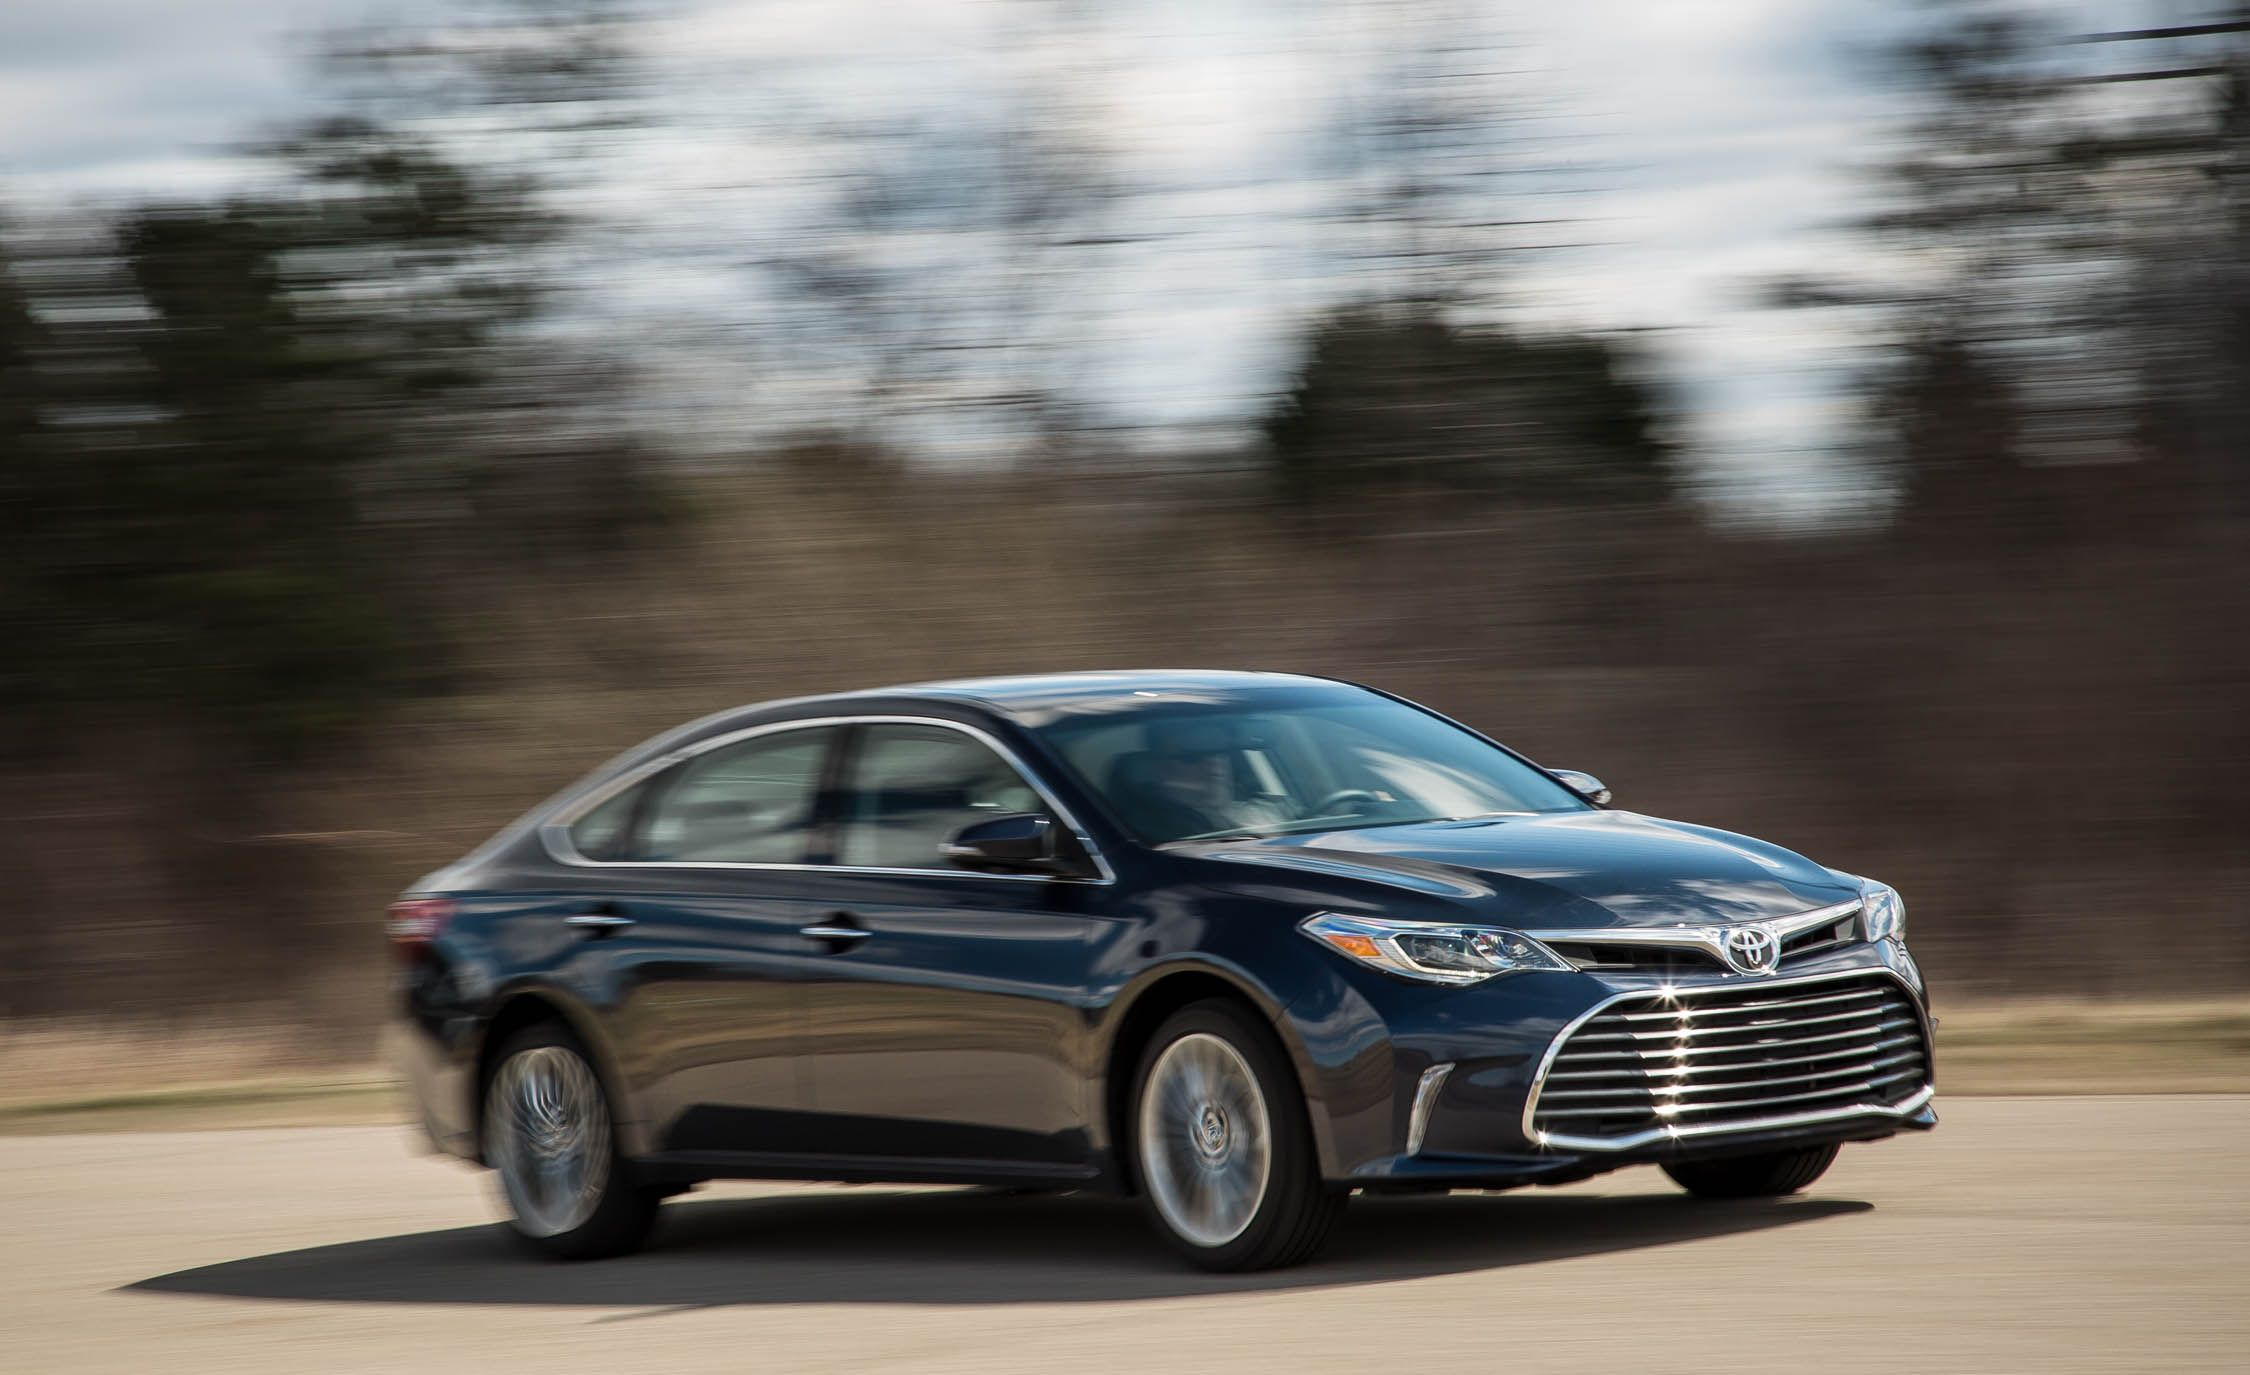 Toyota Avalon Reviews Toyota Avalon Price s and Specs